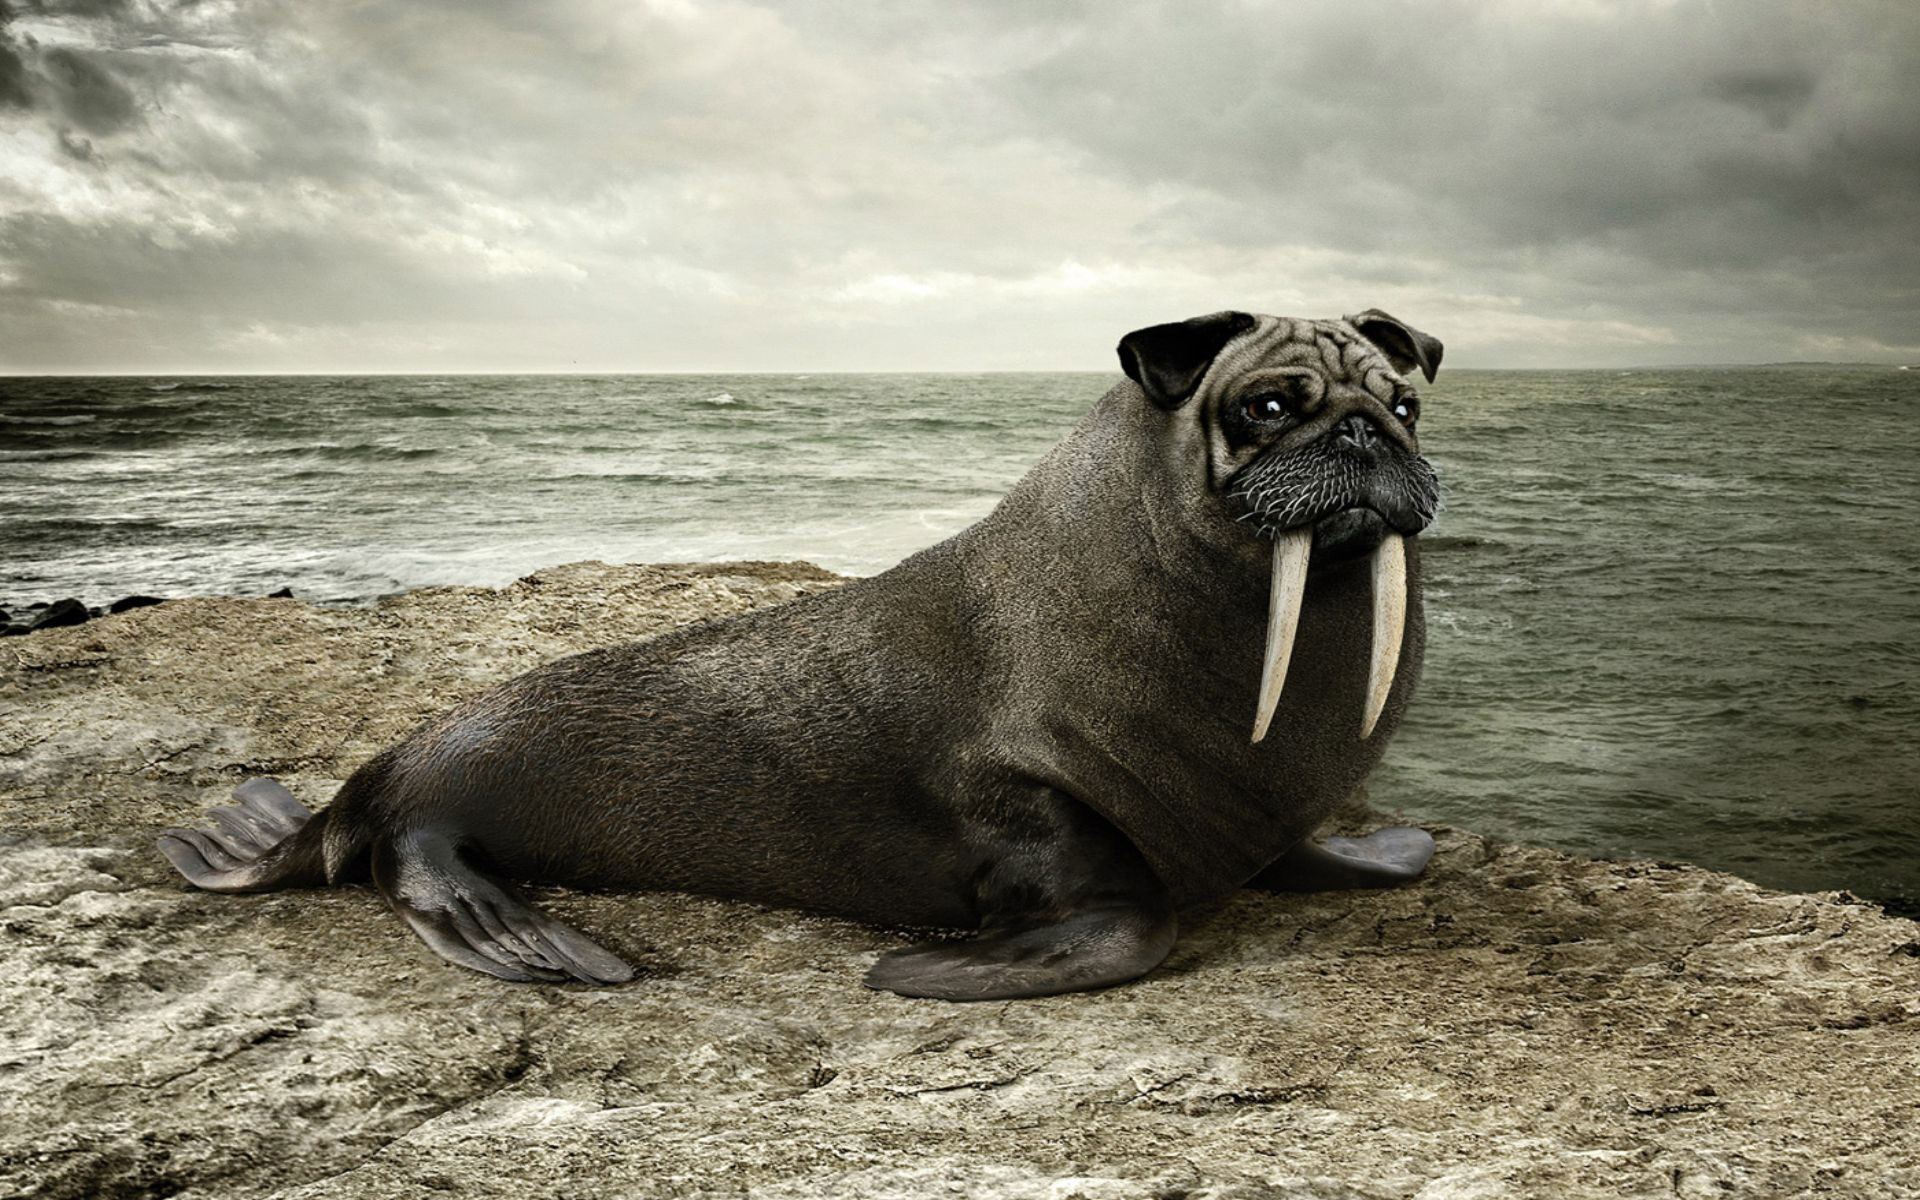 Creative Hd Wallpapers Free Download Sea Lion Hd Wallpapers